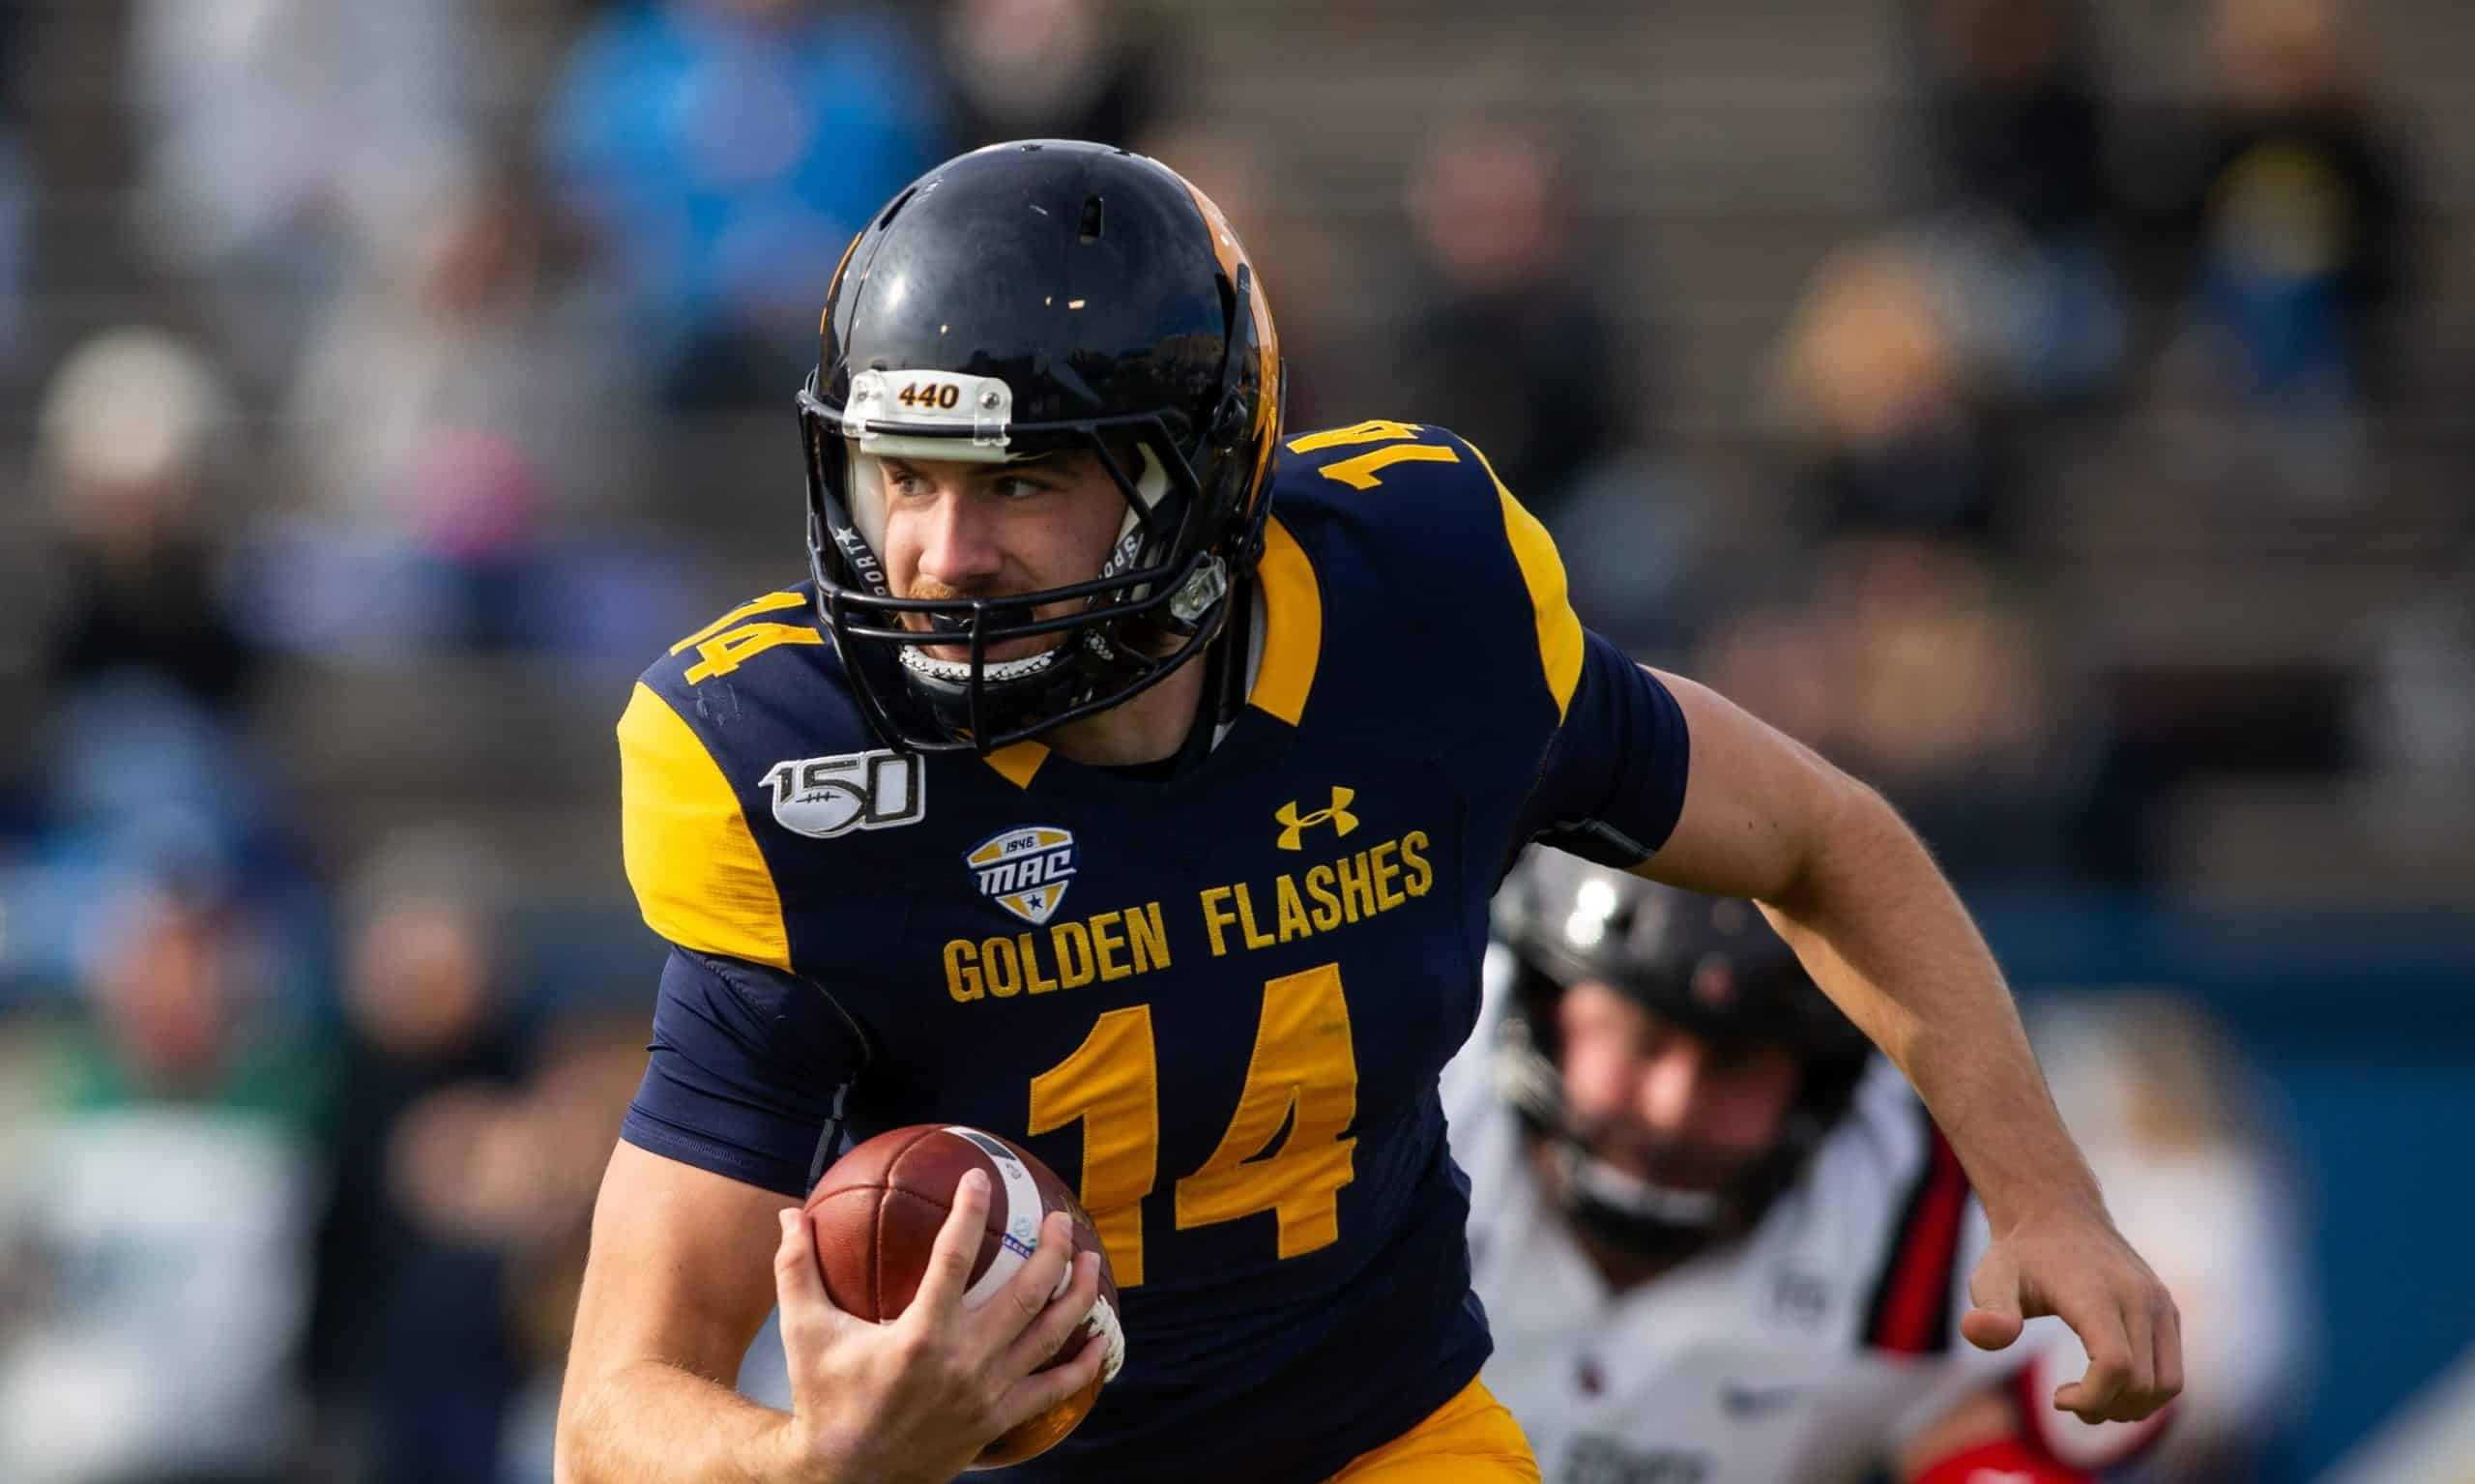 Kent State QB Dustin Crum the ultimate underdog in 2021